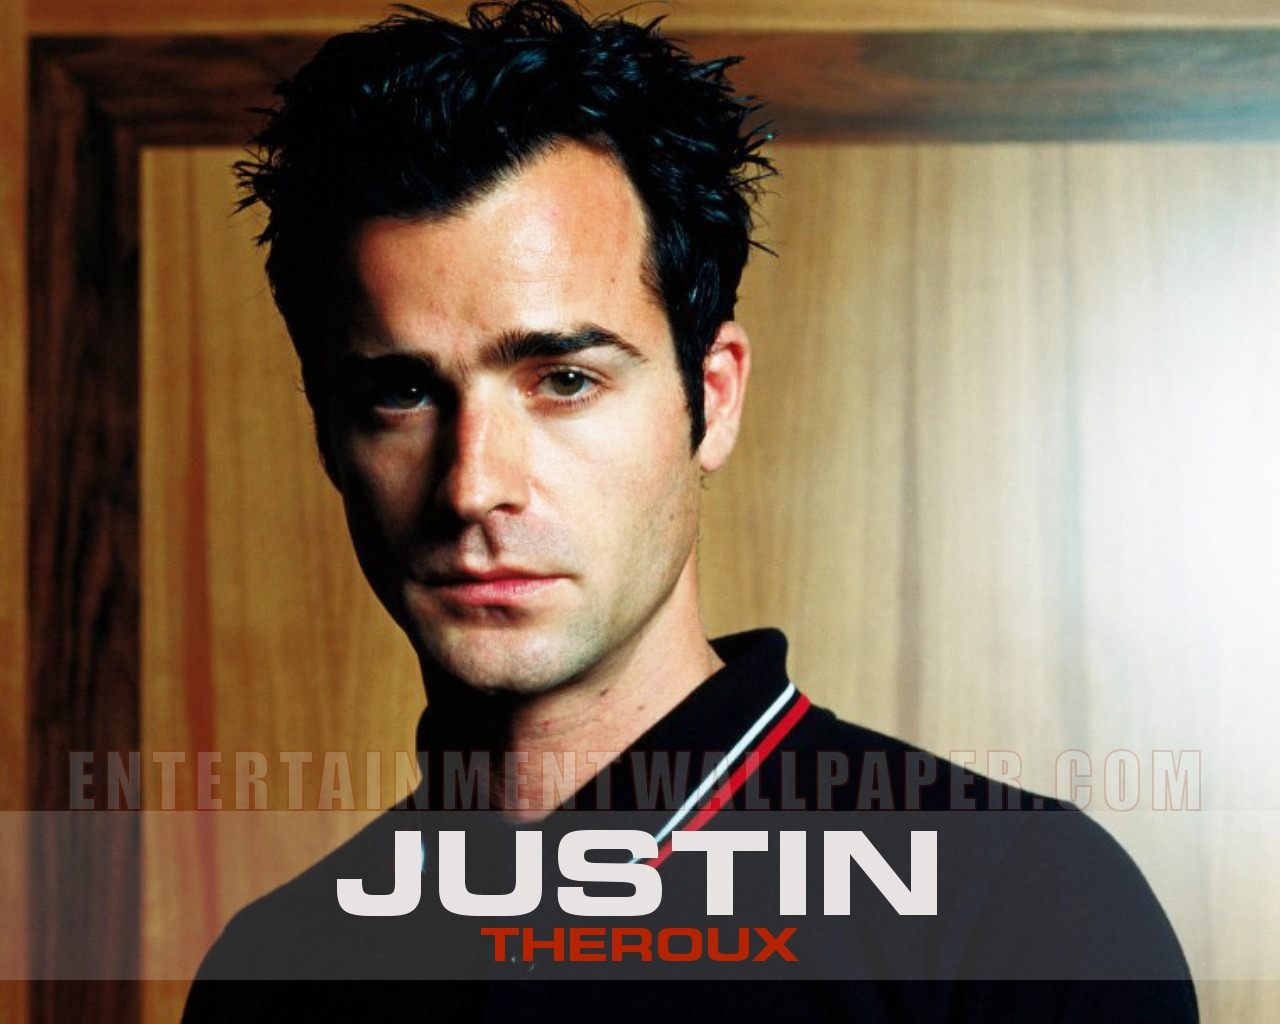 Justin Theroux Wallpaper - Original size, download now.